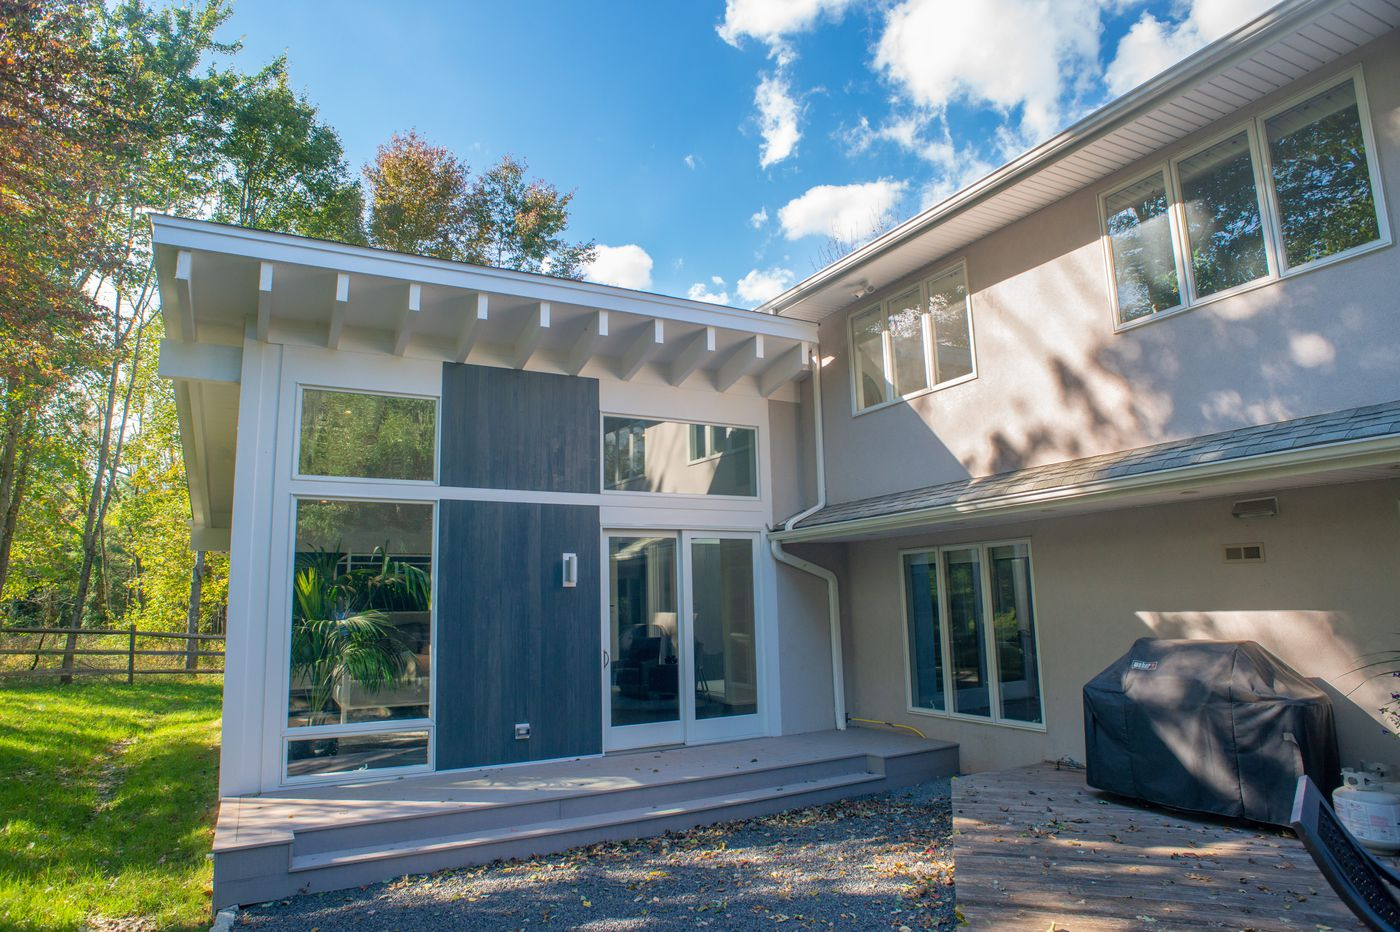 Creating a space for ground-floor aging in Bucks County